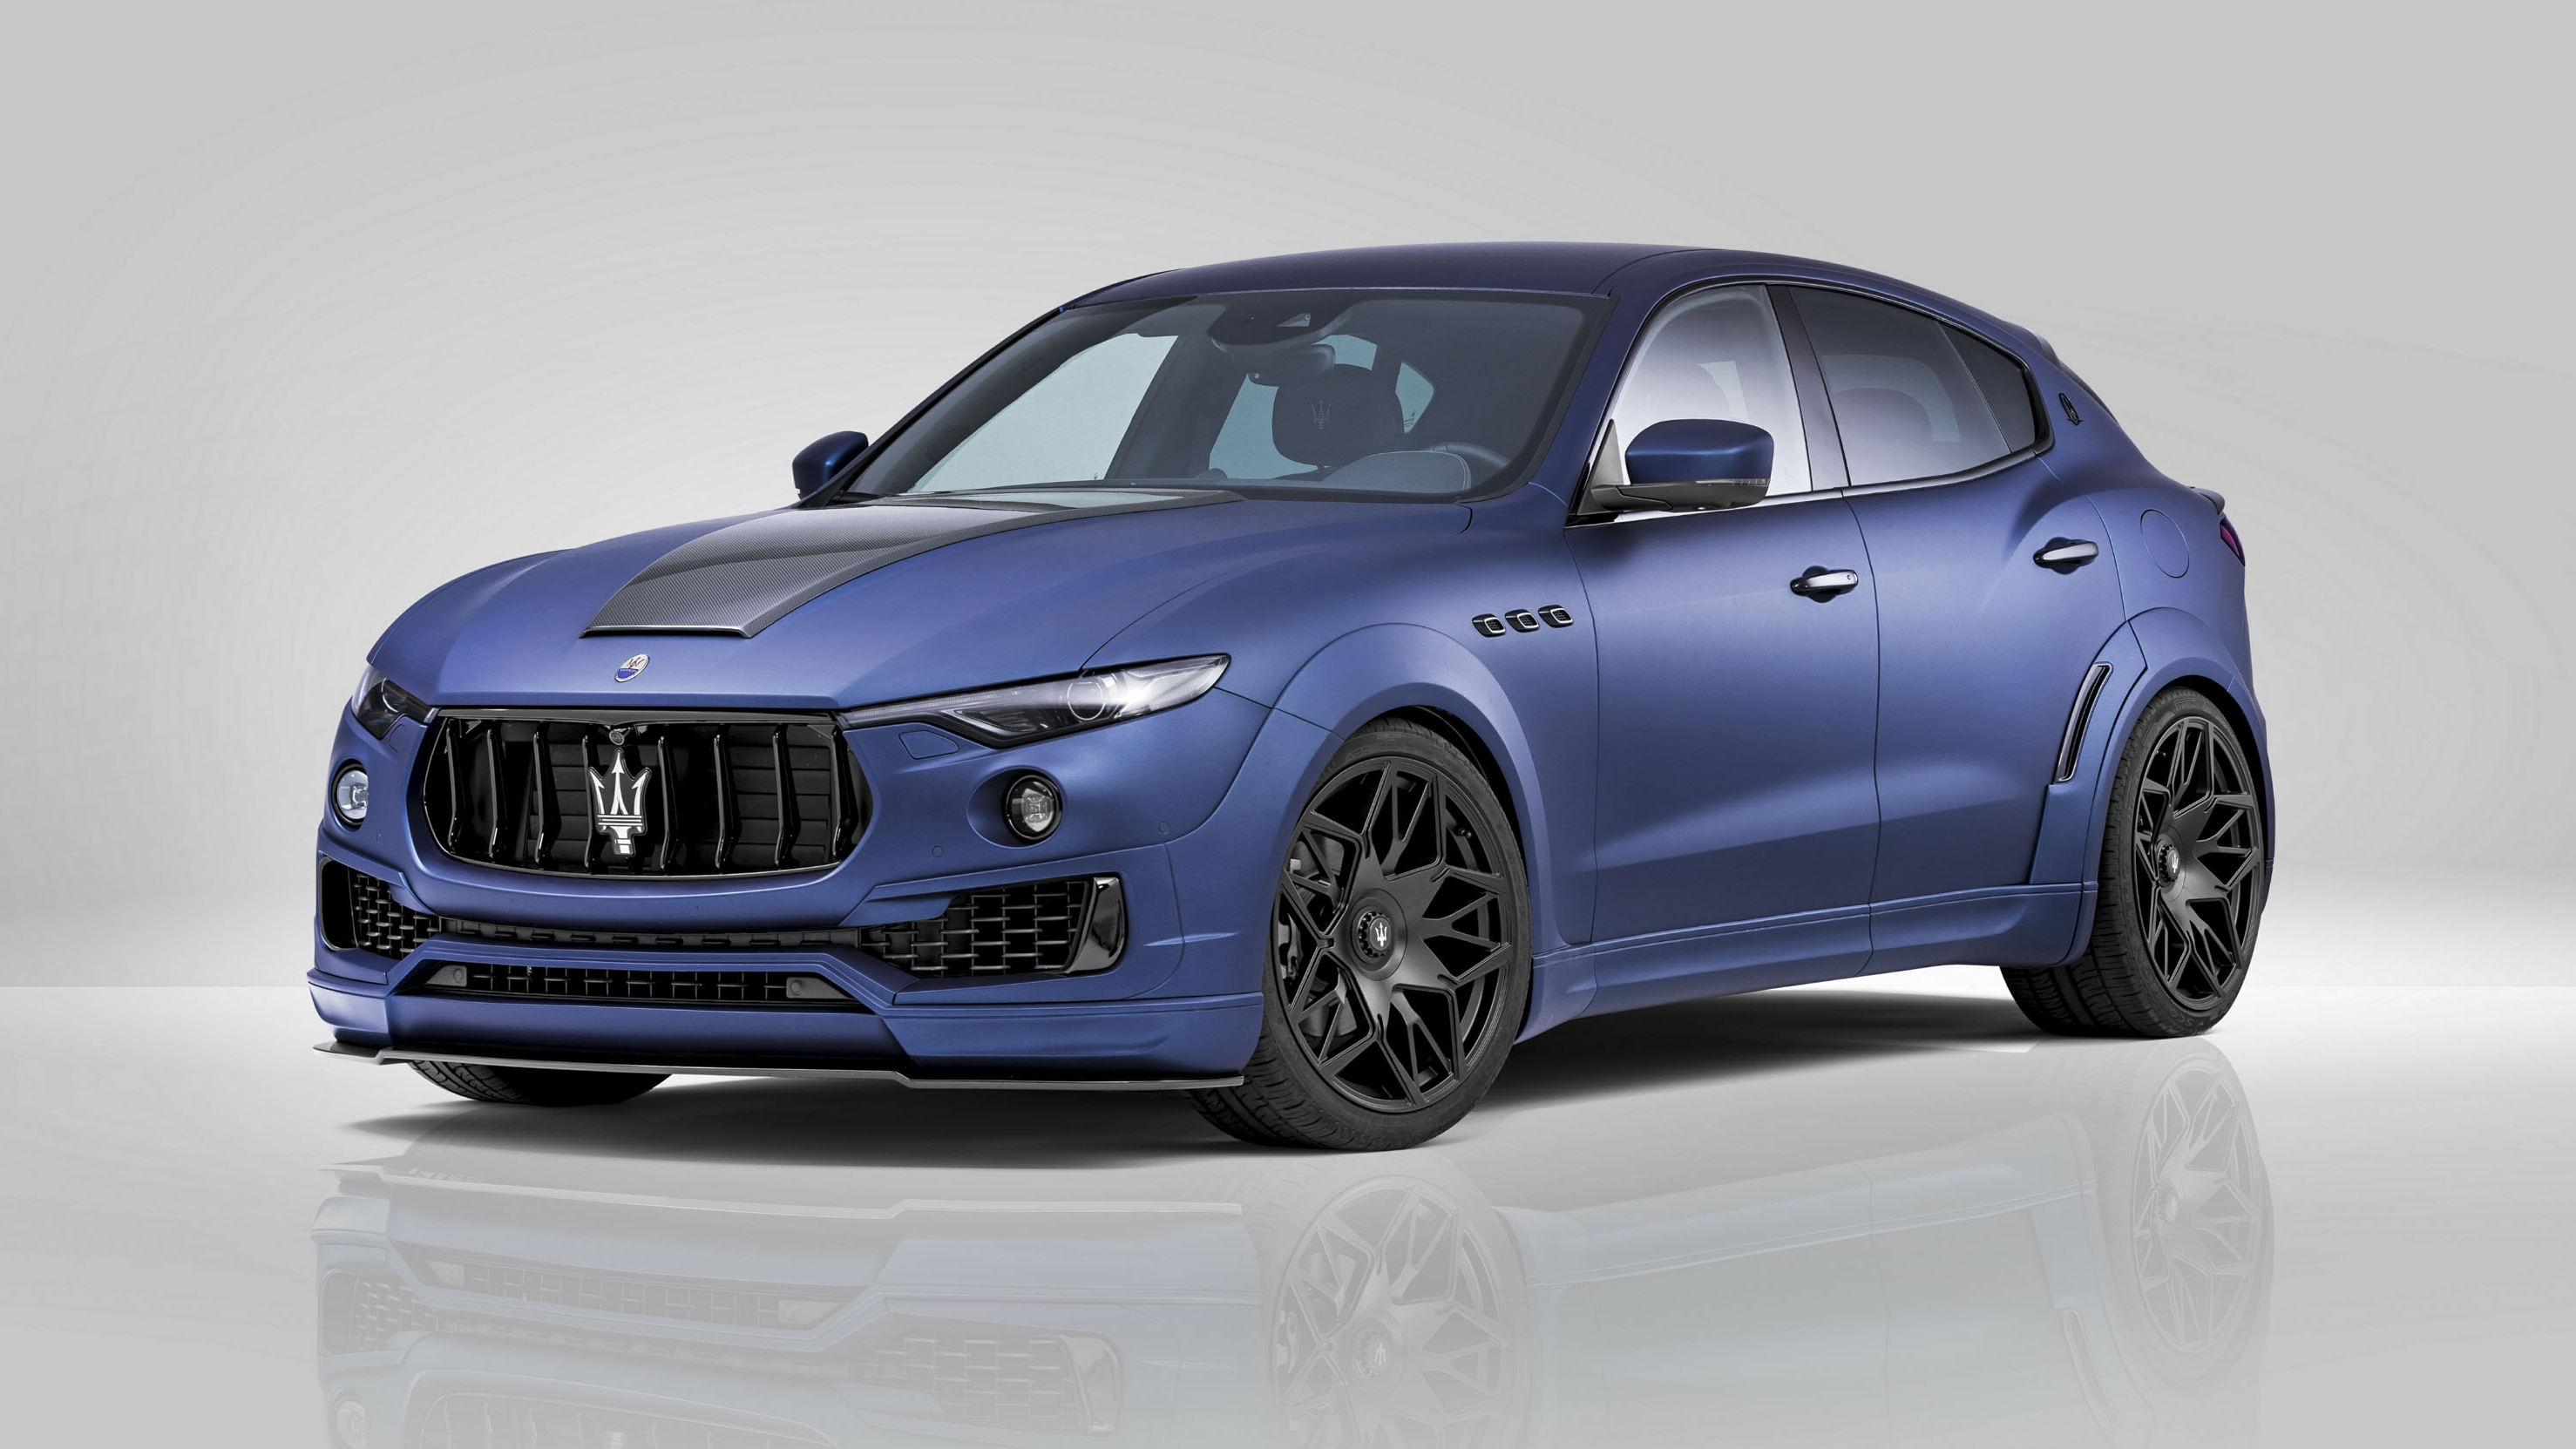 2017 maserati levante esteso by novitec review gallery top speed. Black Bedroom Furniture Sets. Home Design Ideas